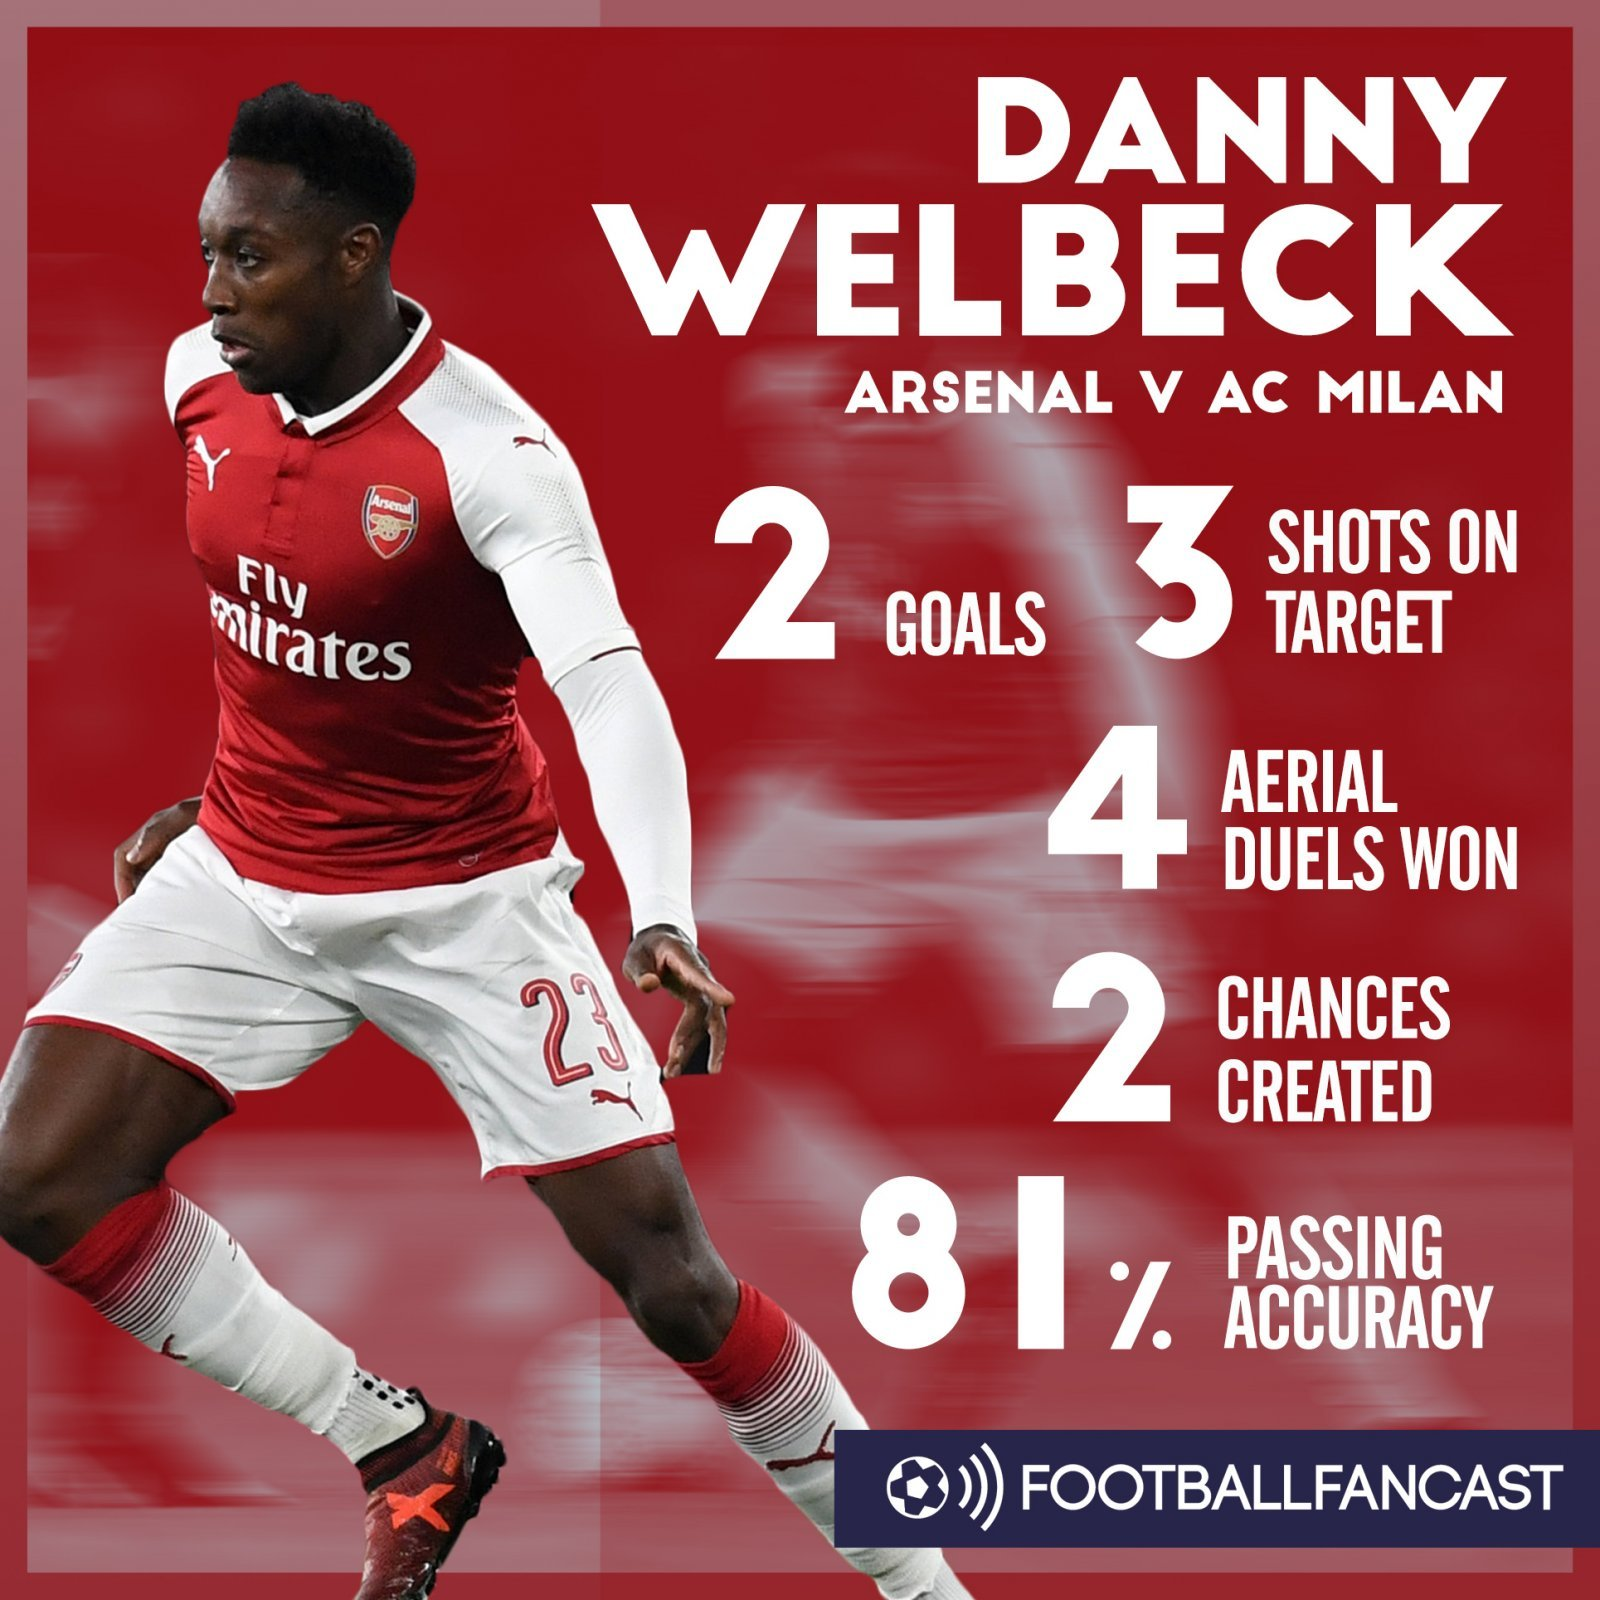 Danny Welbeck's stats from Arsenal's 3-1 win over AC Milan